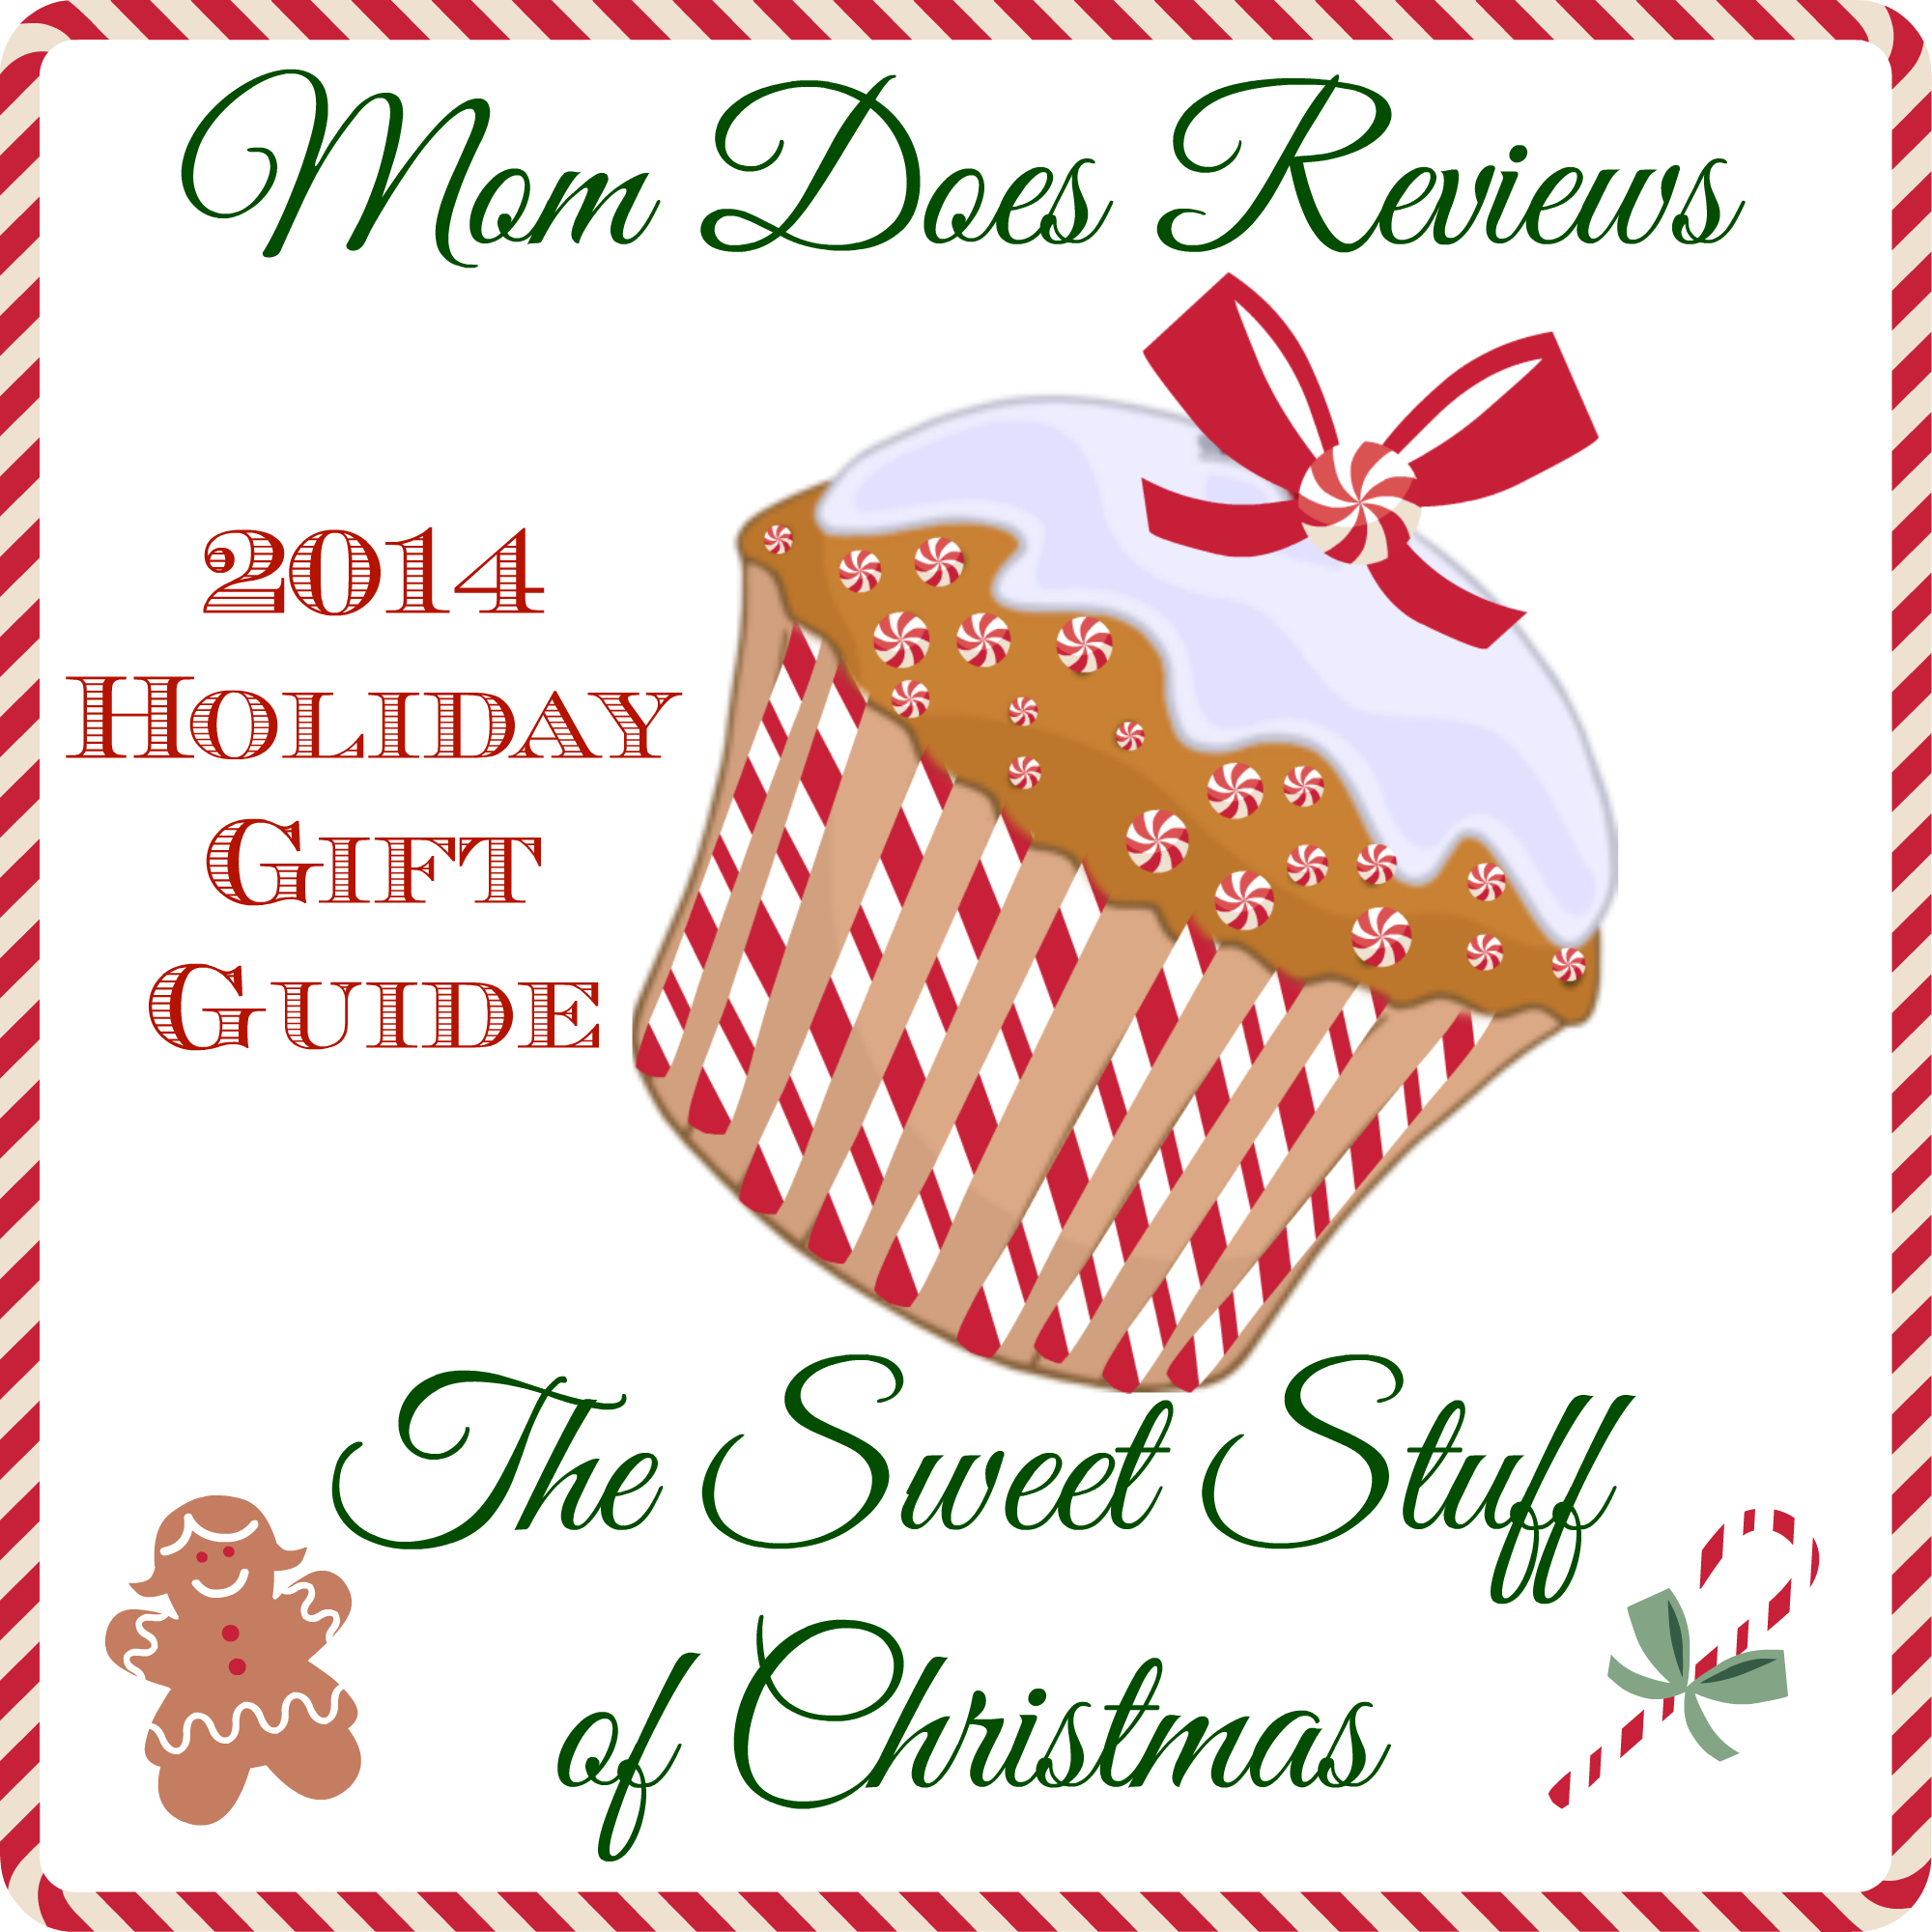 Mom Does Reviews has a great Christmas Gift Guide! #ChristmasMDR14 #Christmas